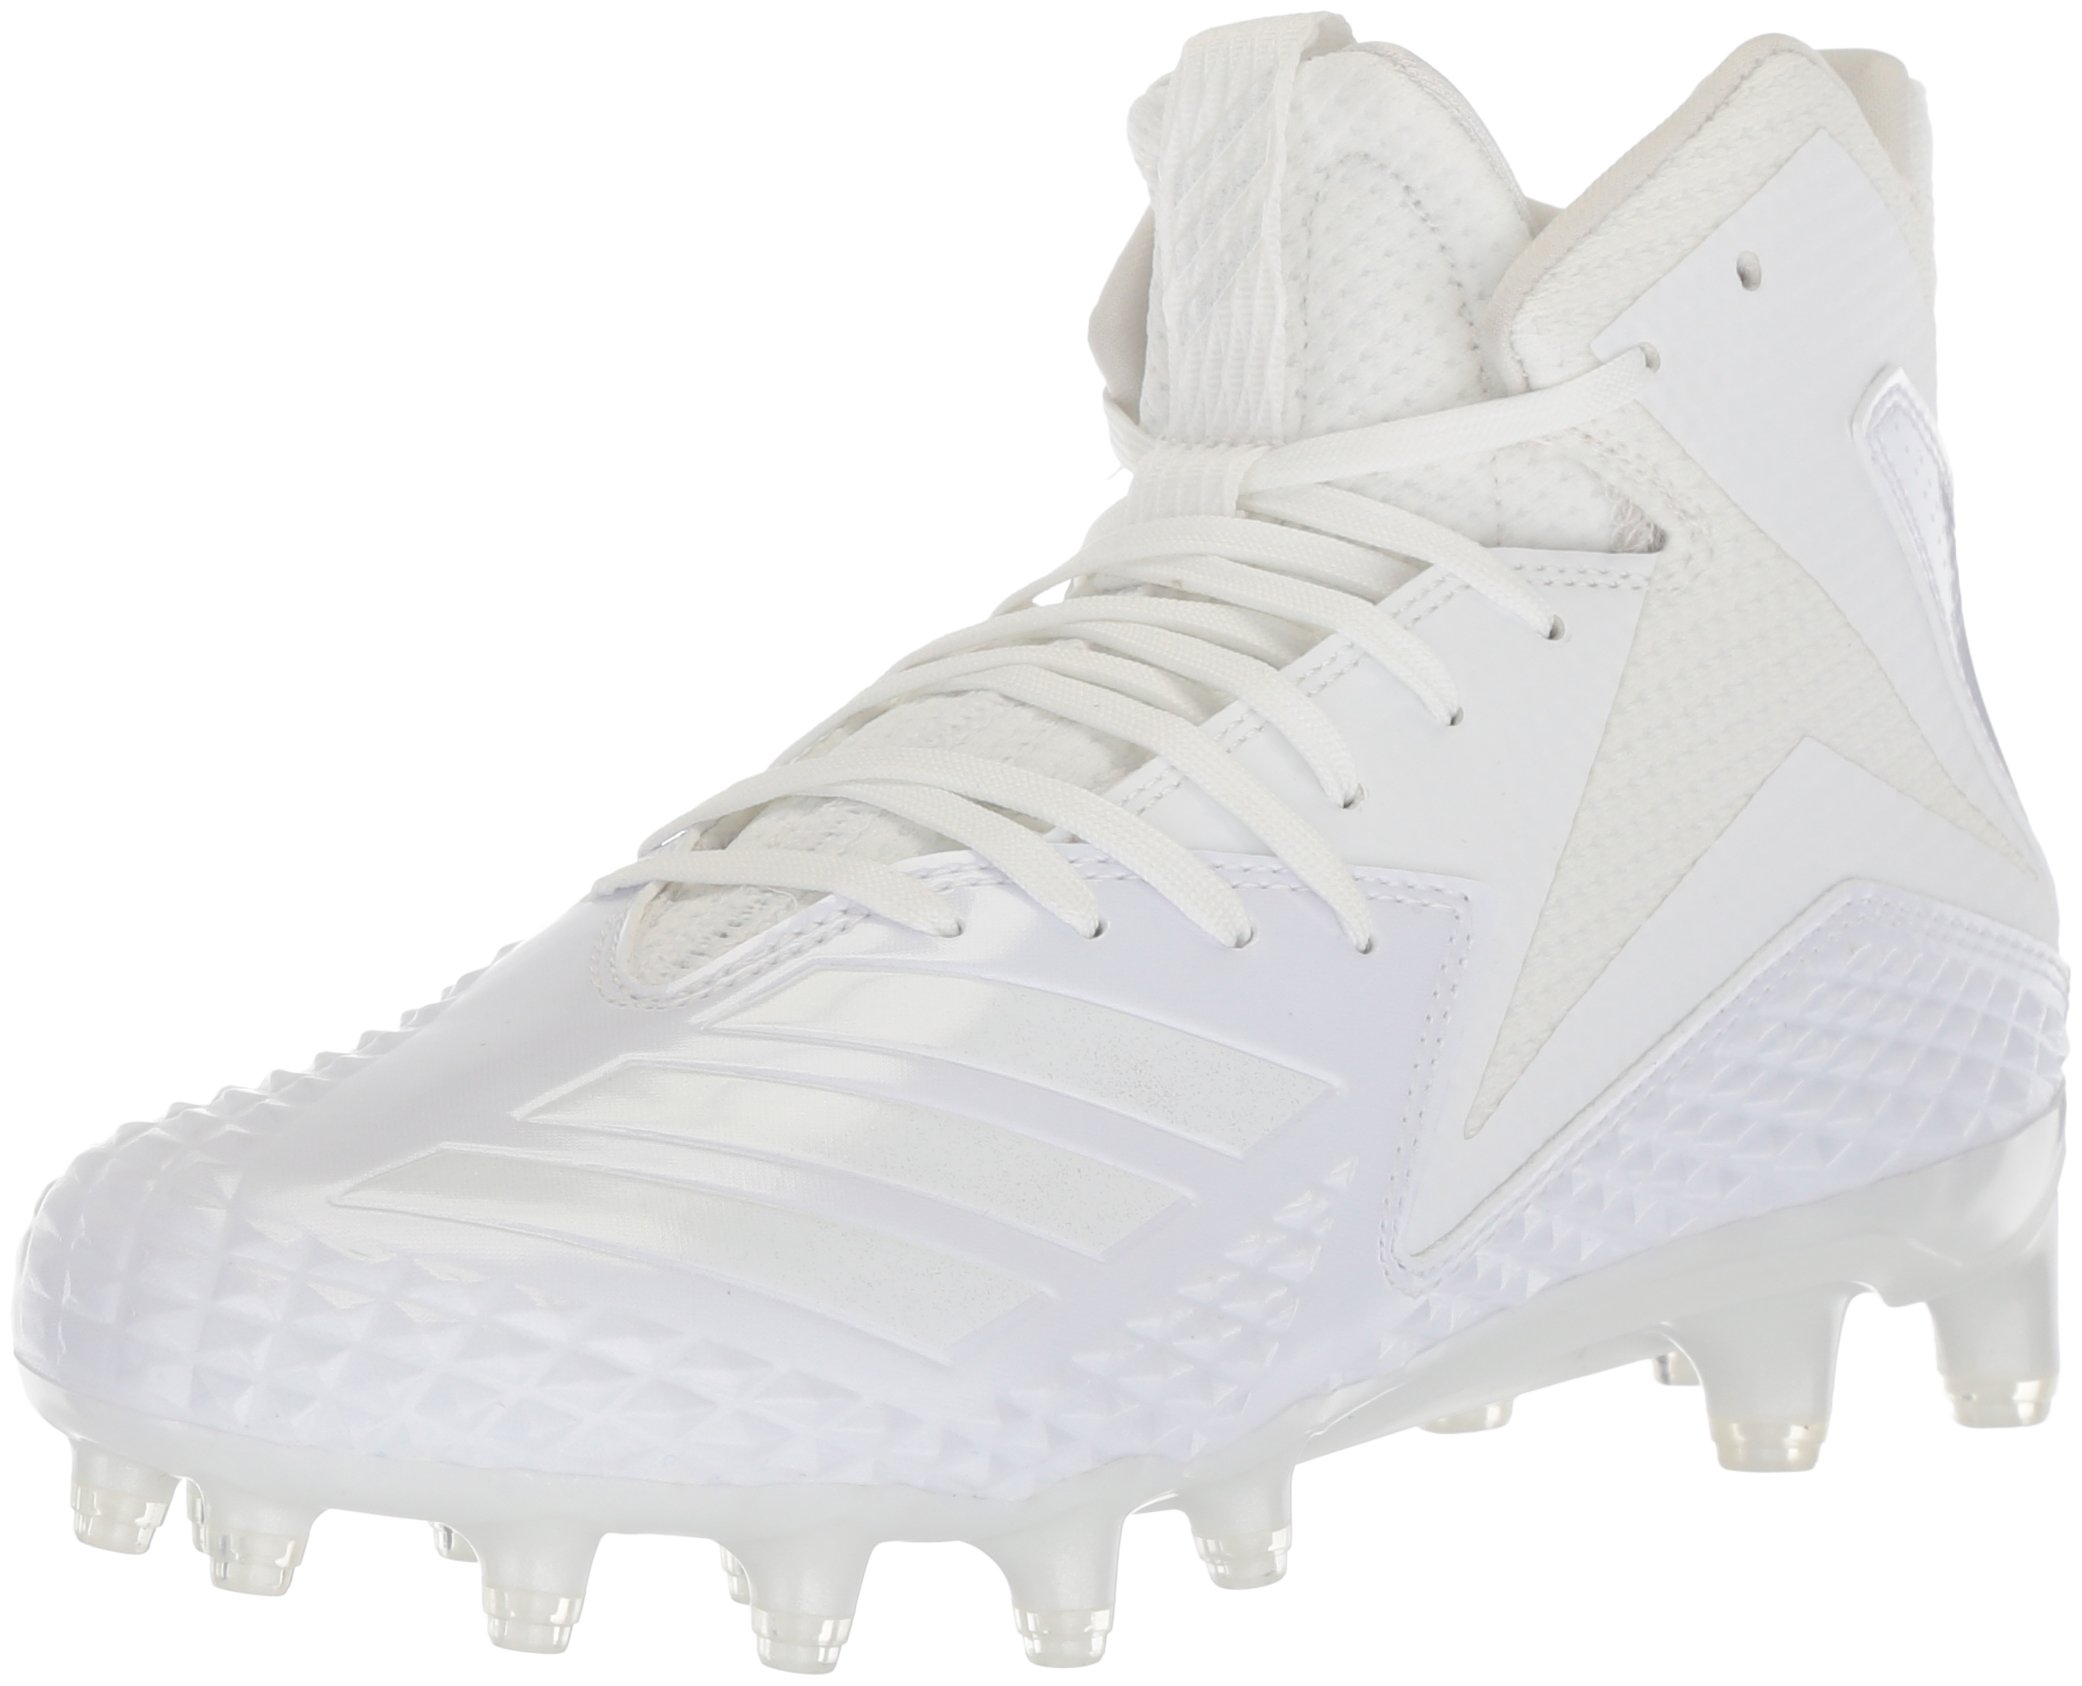 adidas Men's Freak X Carbon Mid Football Shoe, White/White/White, 7 M US